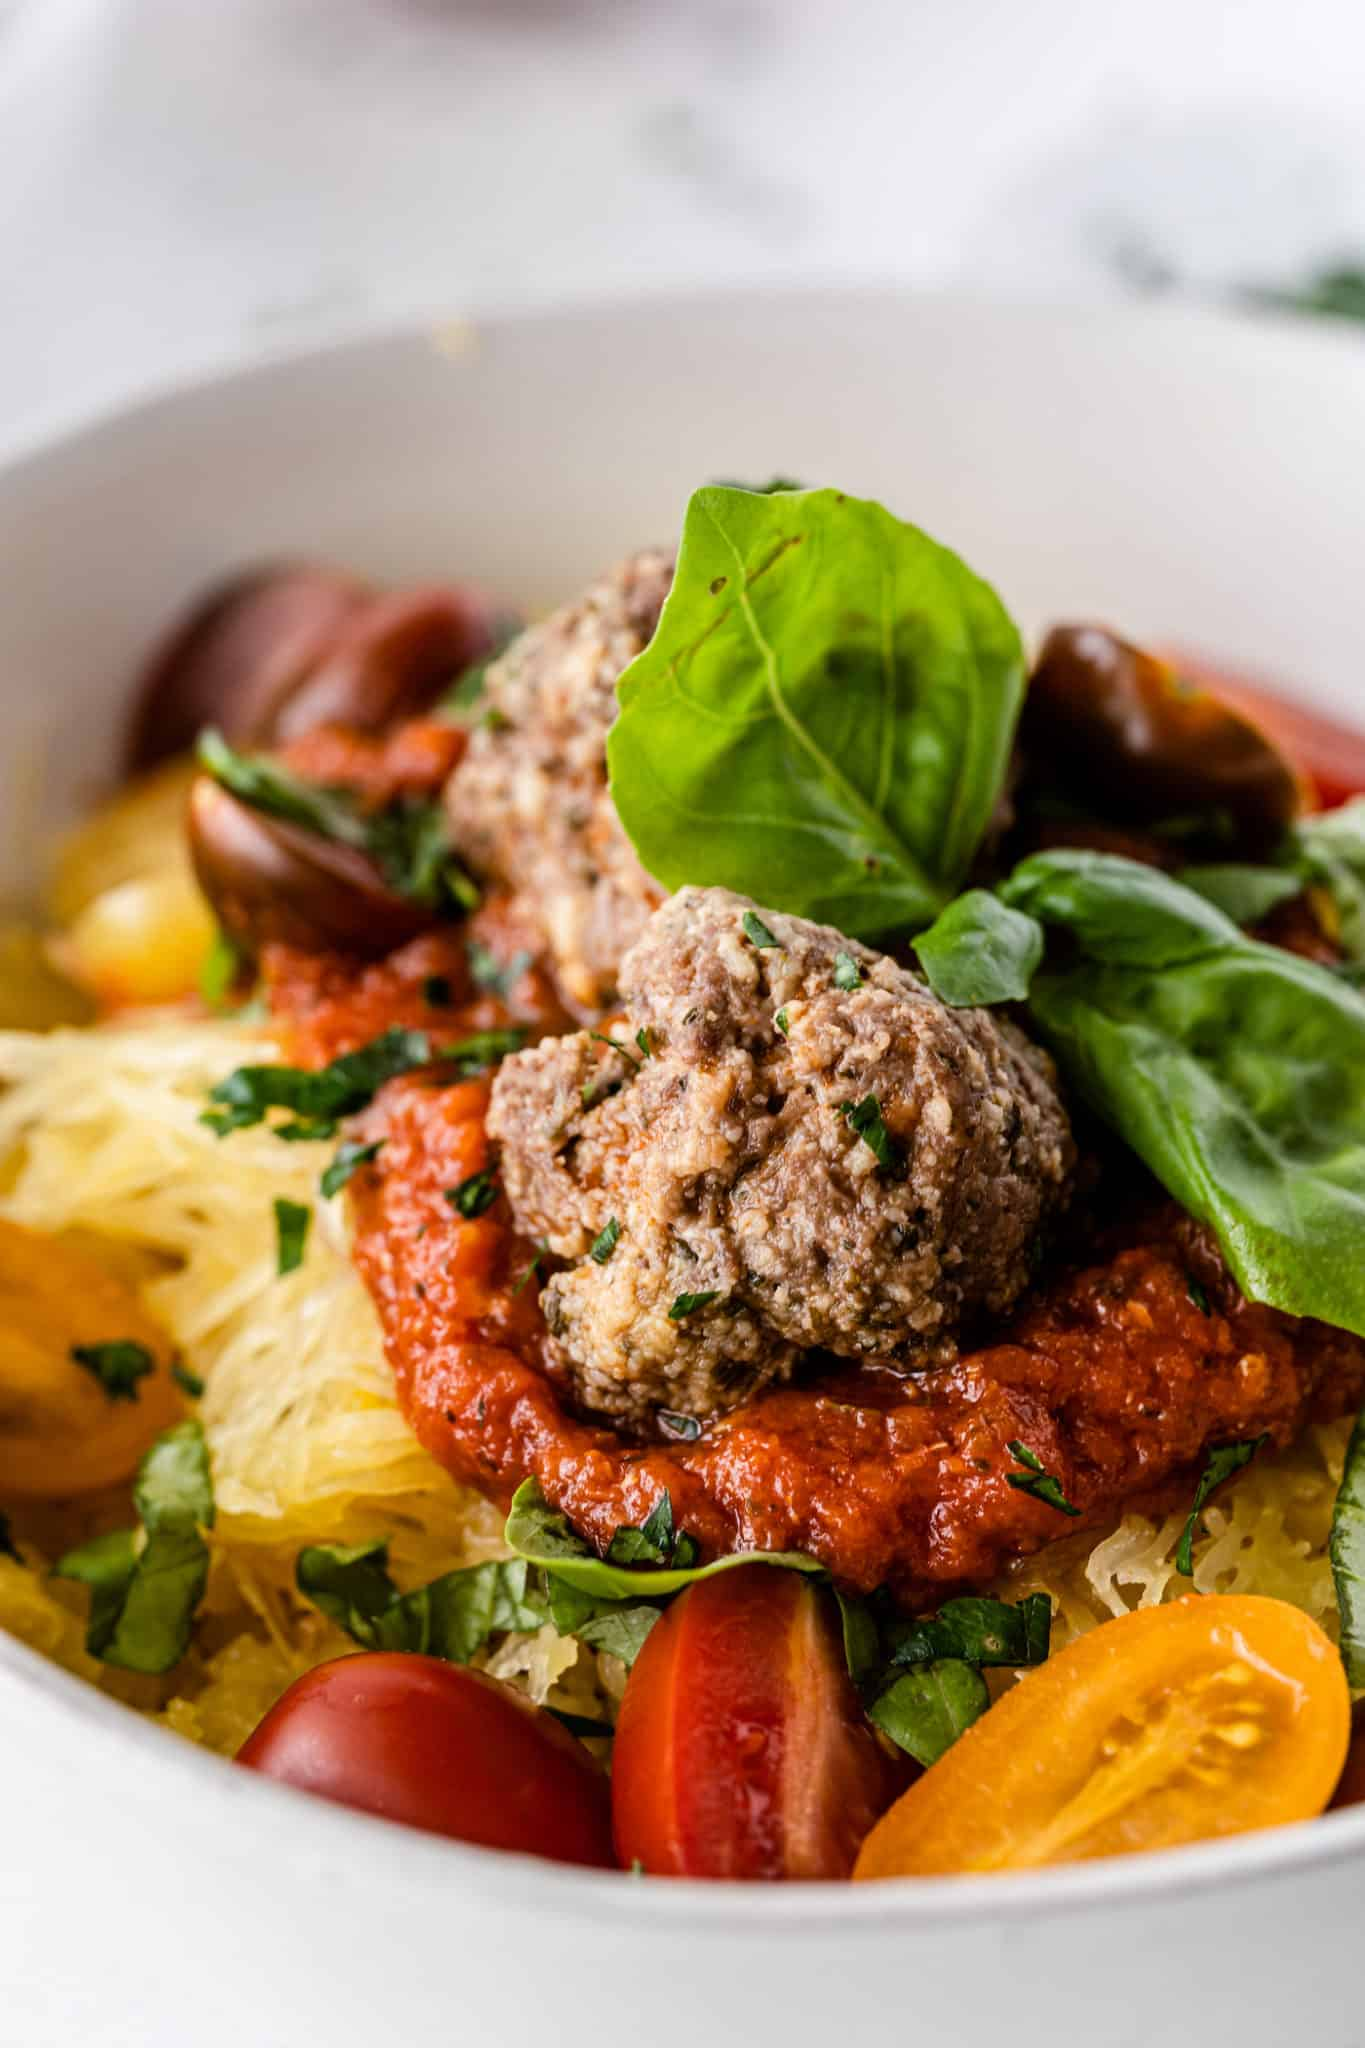 meatballs served in a bowl with spaghetti squash and marinara